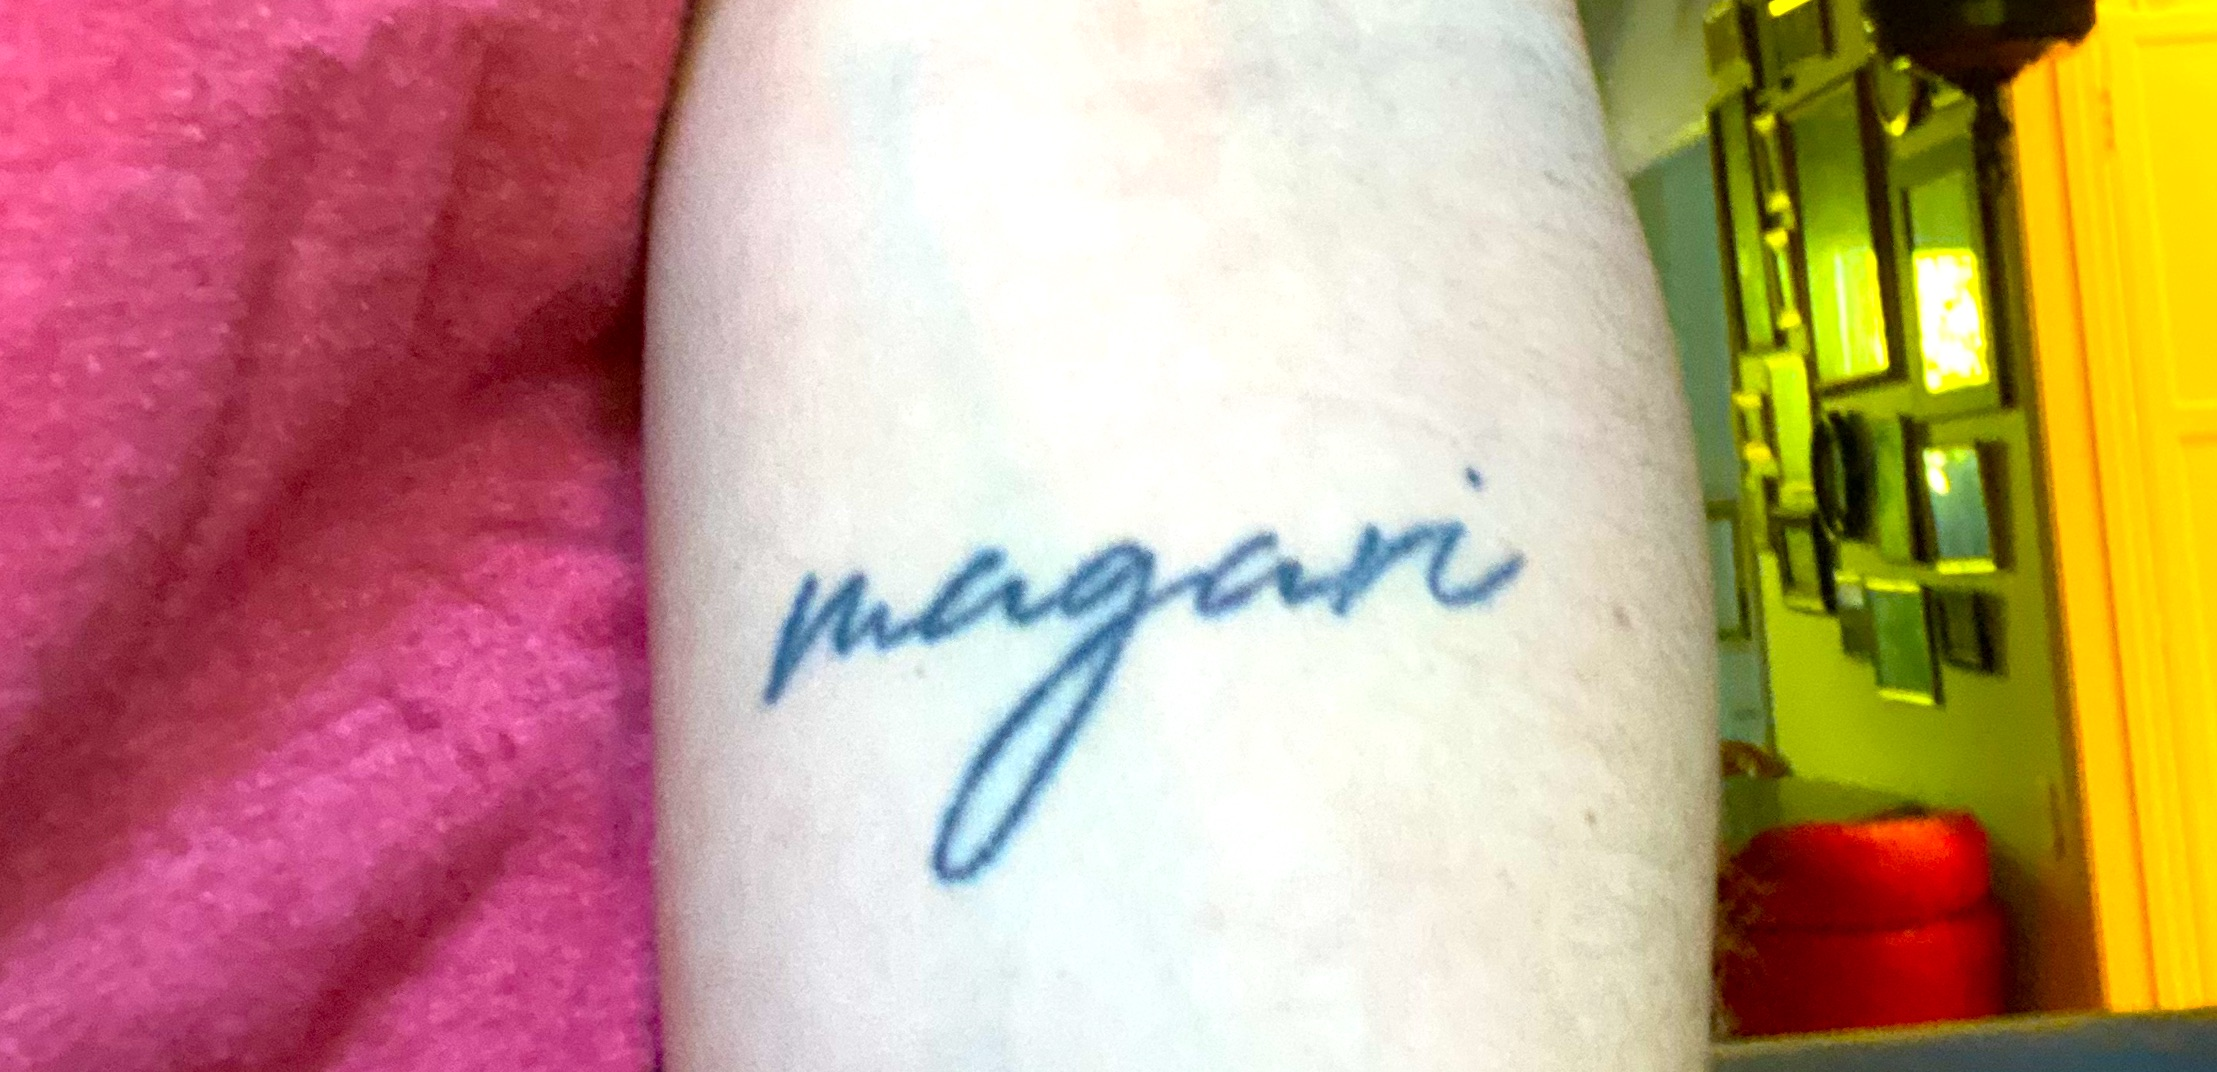 What does Magari Mean in Italian